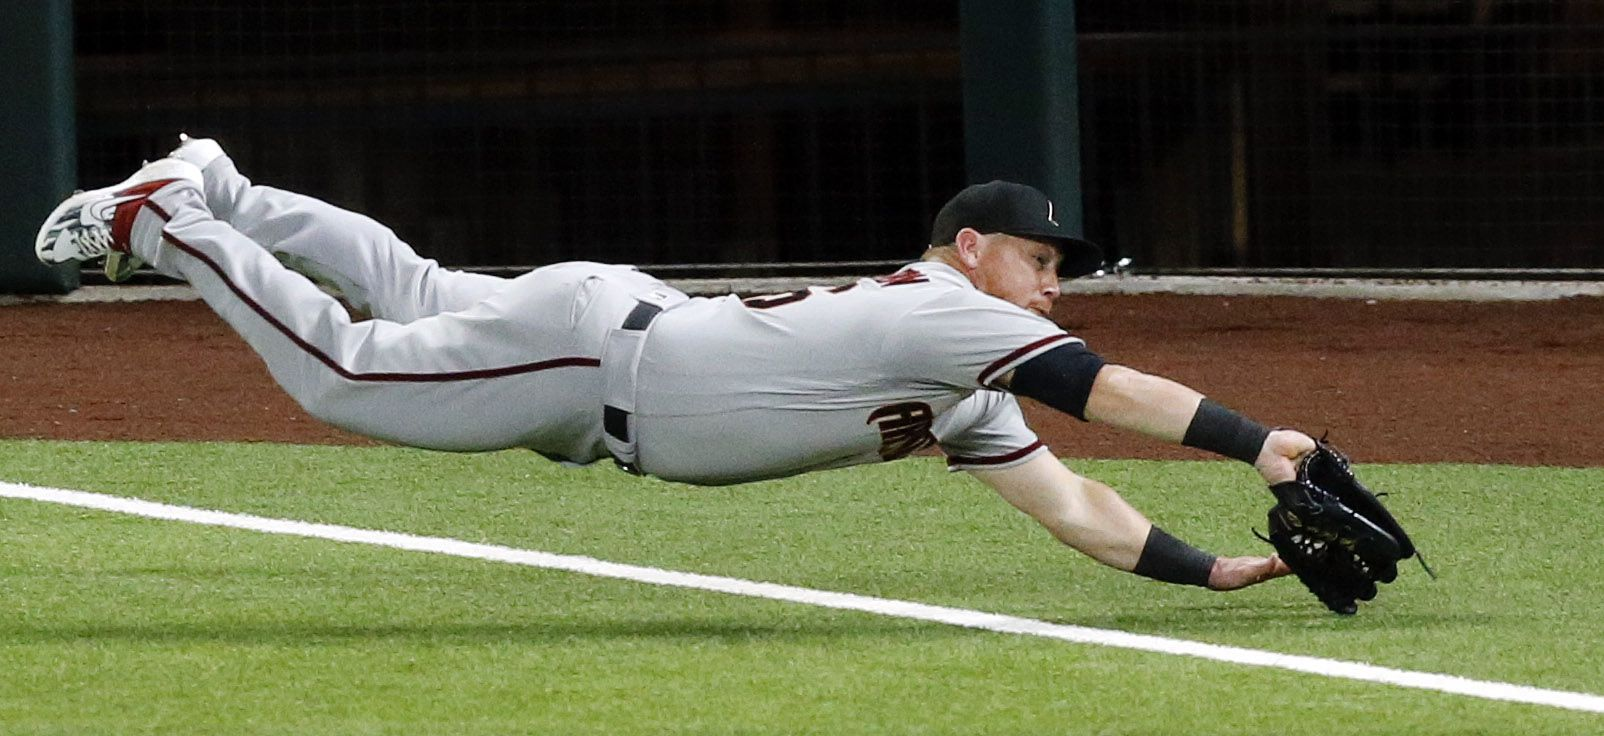 Arizona Diamondbacks right fielder Kole Calhoun (56) dives across the foul line for a pop up by Texas Rangers Elvis Andrus during the eighth inning at Globe Life Field in Arlington, Texas, Tuesday, July 28, 2020. Even though the ball was in his glove, he couldn't hang onto it. (Tom Fox/The Dallas Morning News)